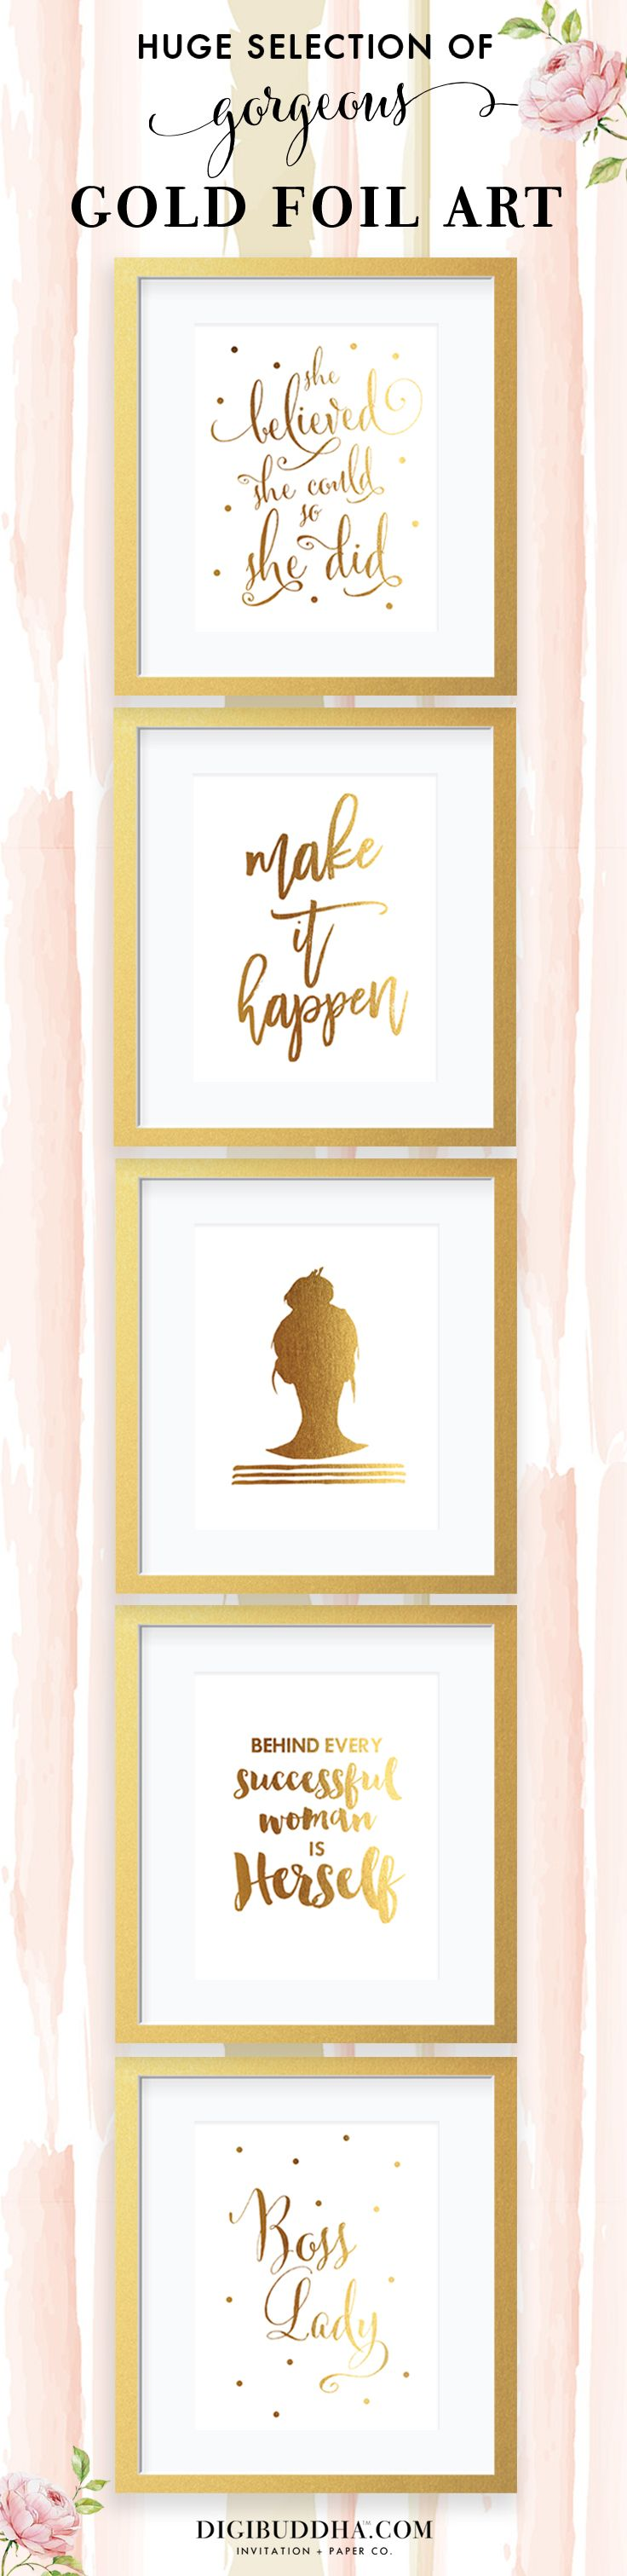 """Chic gold foil art prints in tons of gorgeous designs.  The perfect gift for your favorite girl boss & the perfect office decor to add a hint of gold.  All prints also available in silver foil as well, in either 5x7"""" or 8x10"""".  Check out these and SO many more gold foil posters at digibuddhashop.com.  